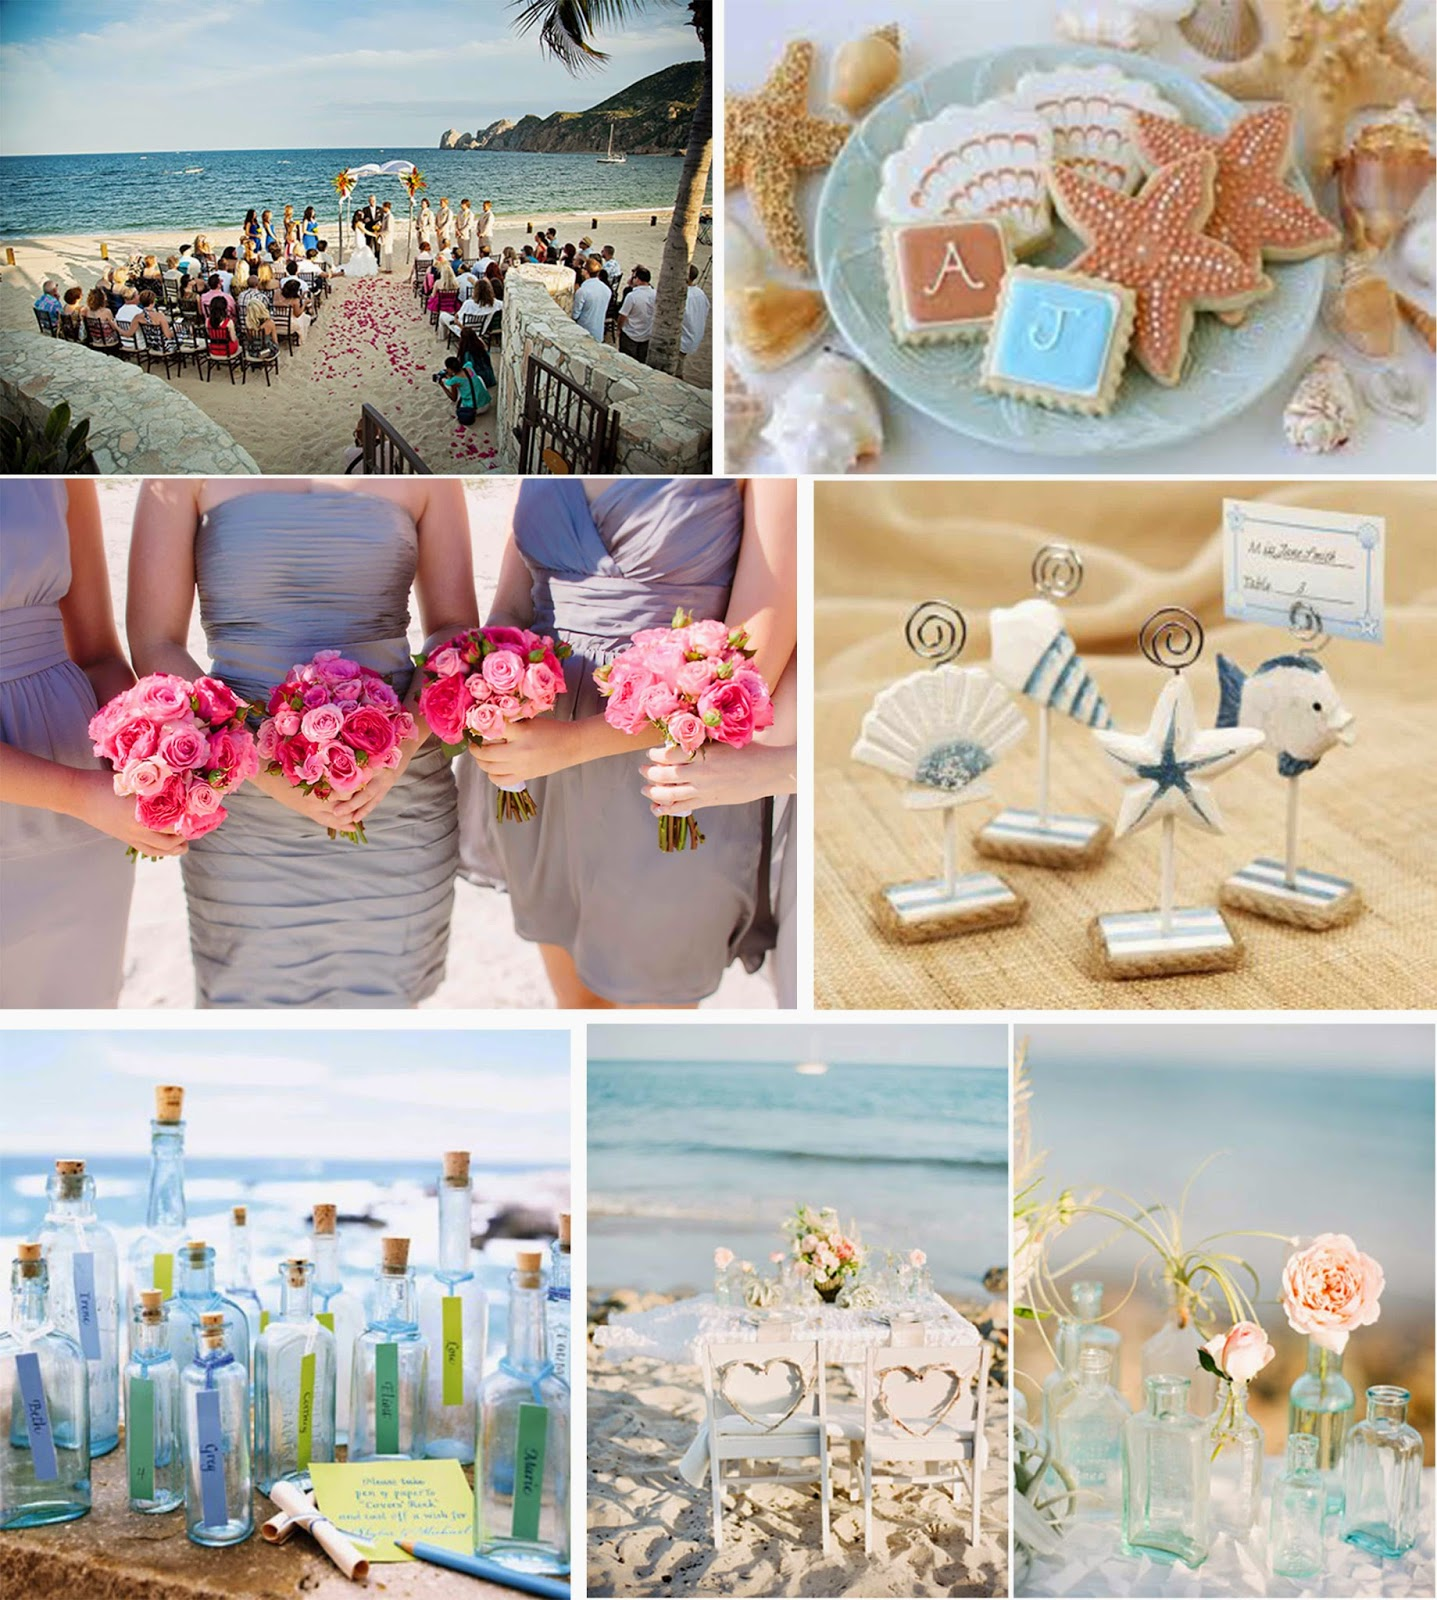 Prom Dress: Best Ideas For The Beach Wedding